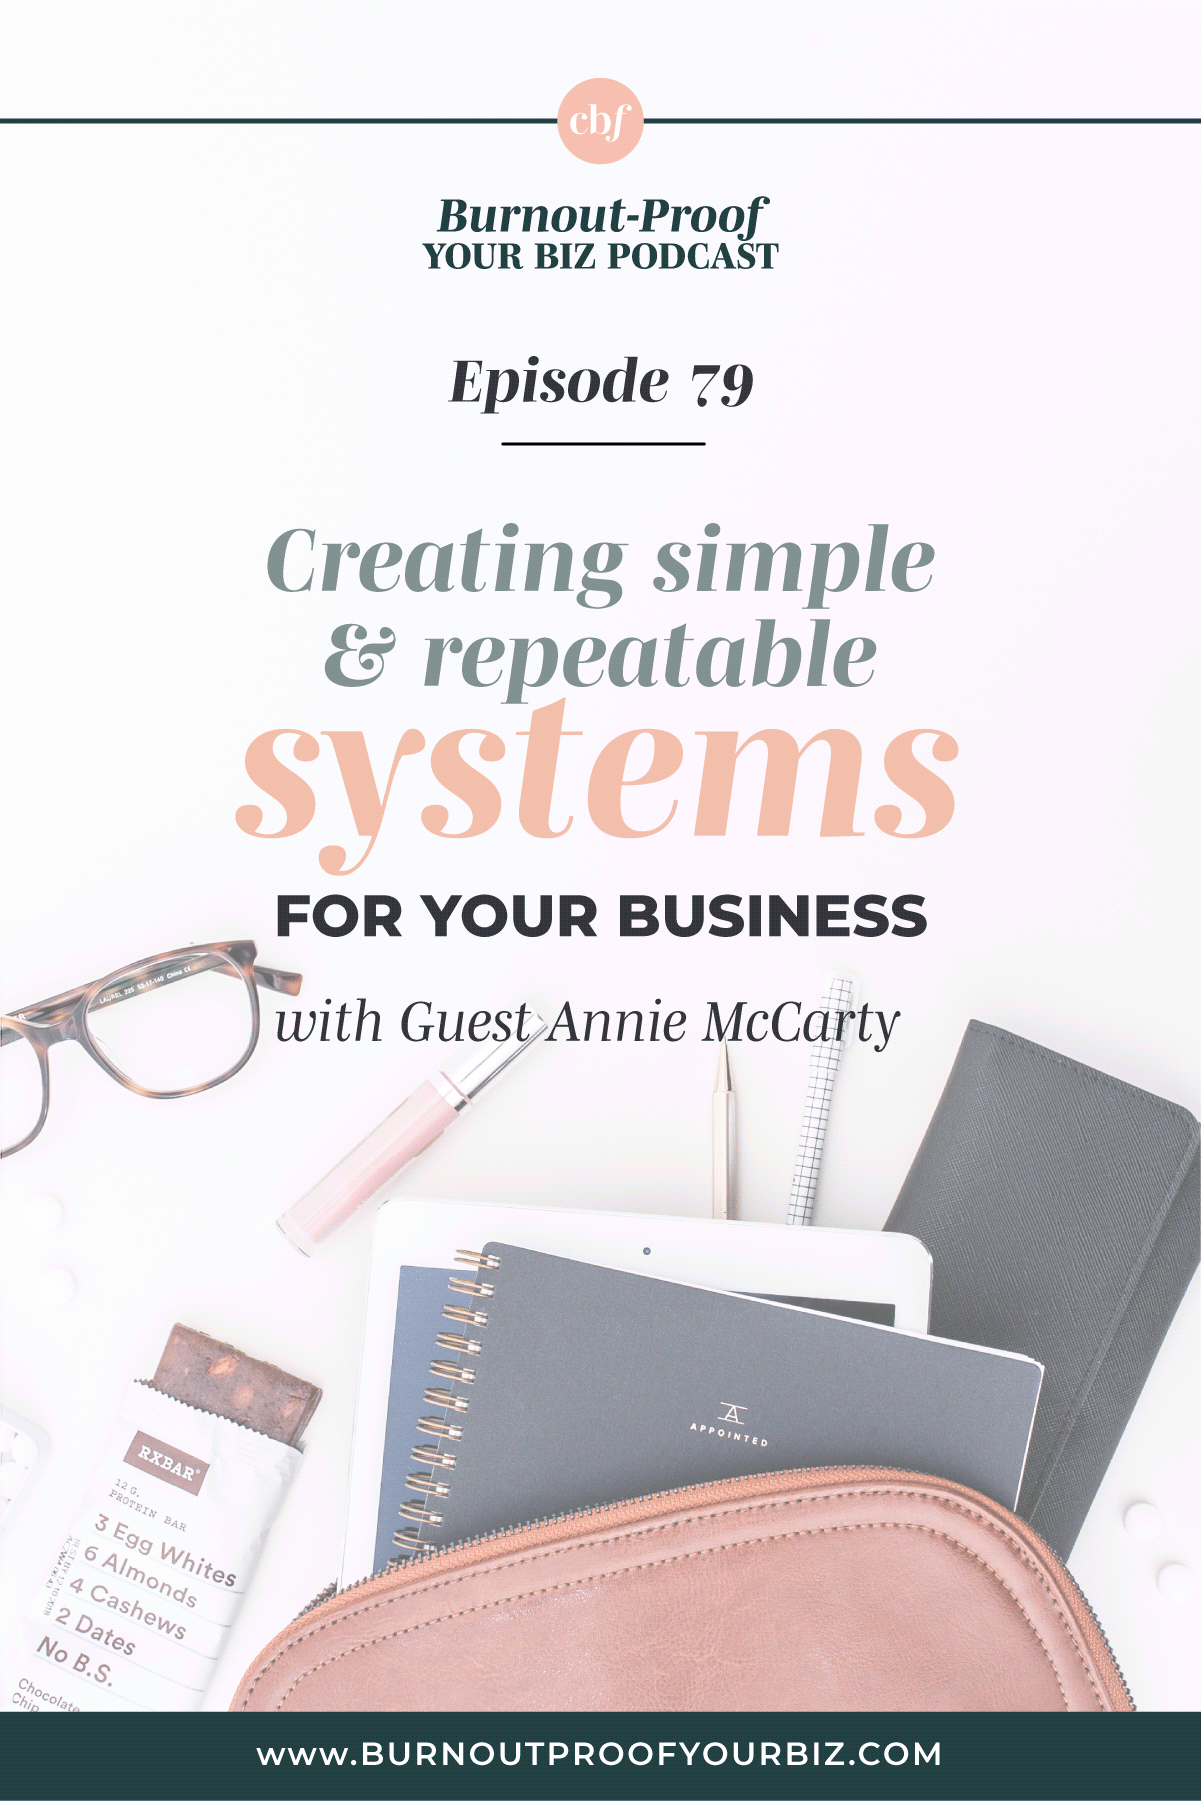 Burnout-Proof Your Biz Podcast with Chelsea B Foster | Episode 079 - Designing your business to fit your life through planning, executing, and systems with guest Annie McCarty